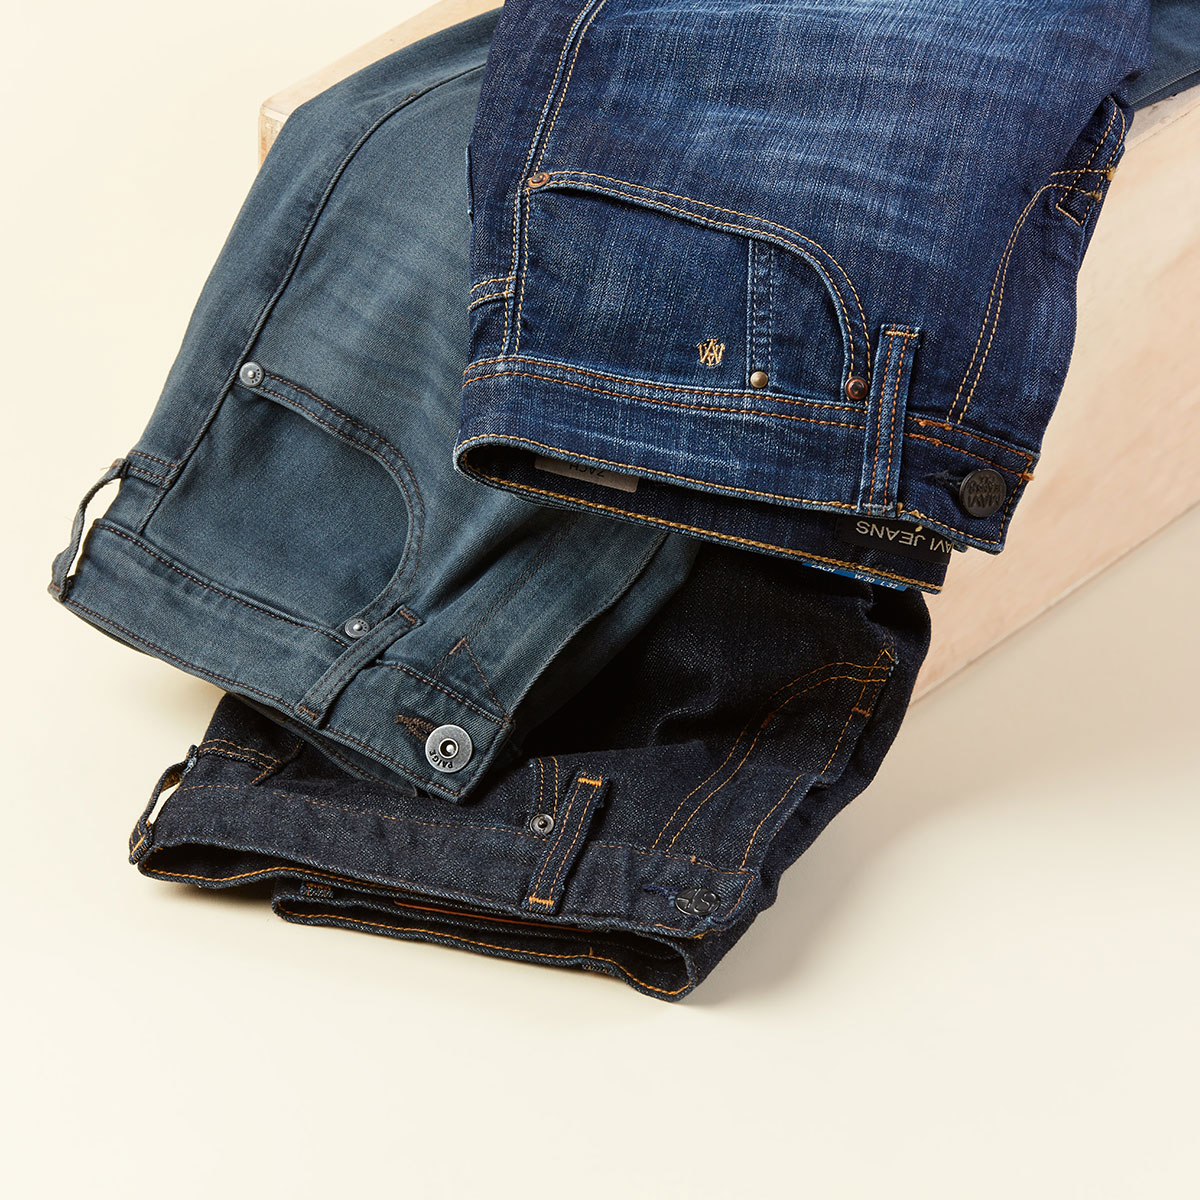 Men's dark denim